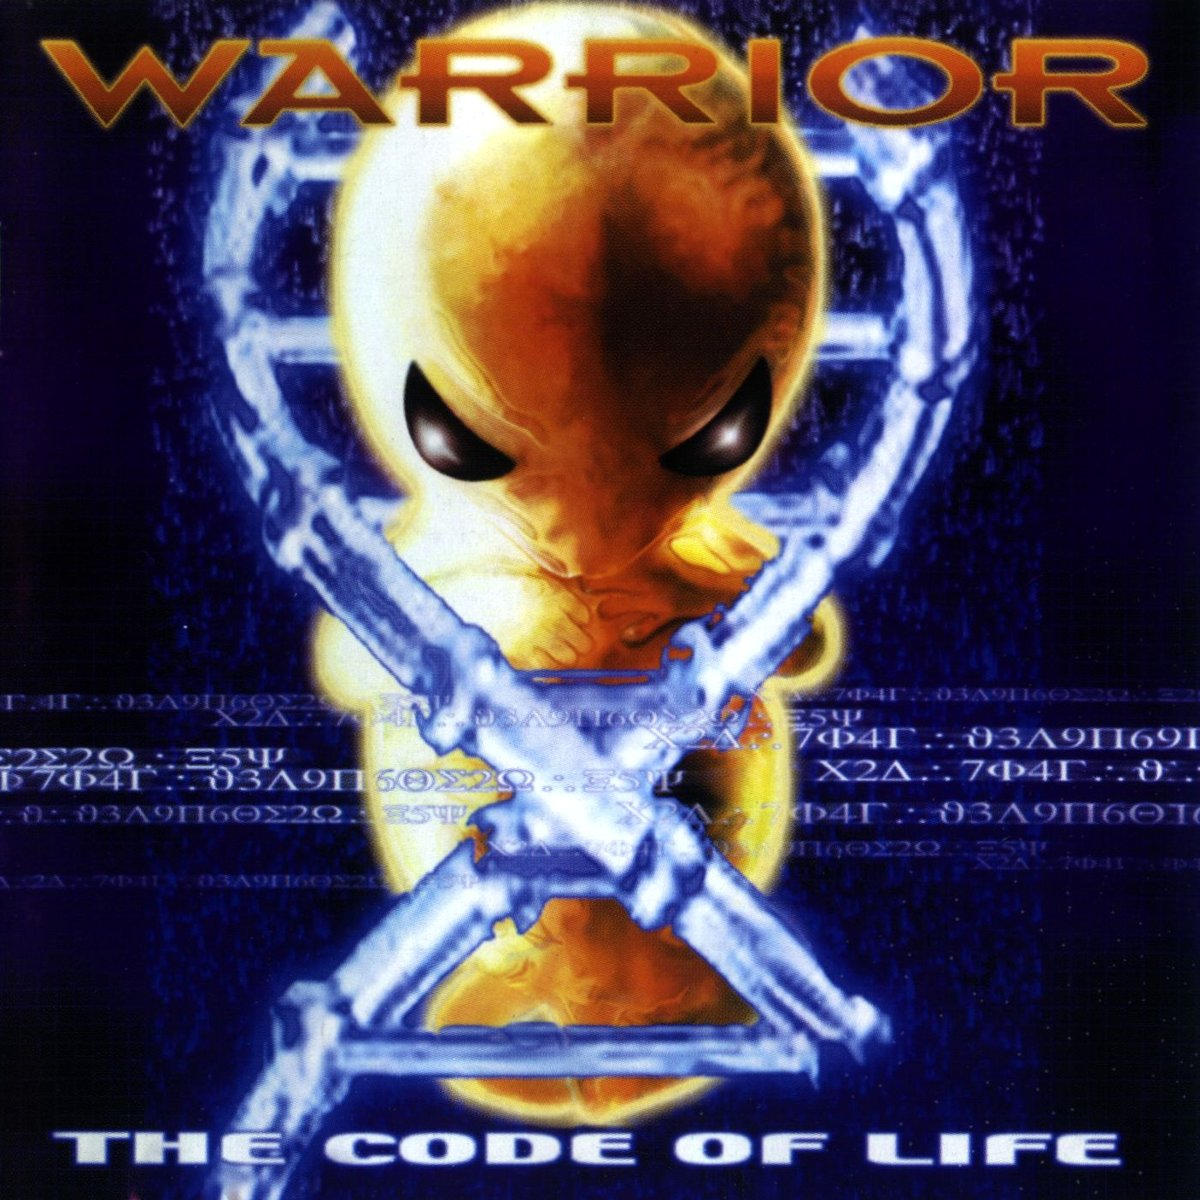 Warrior - The Code of Life